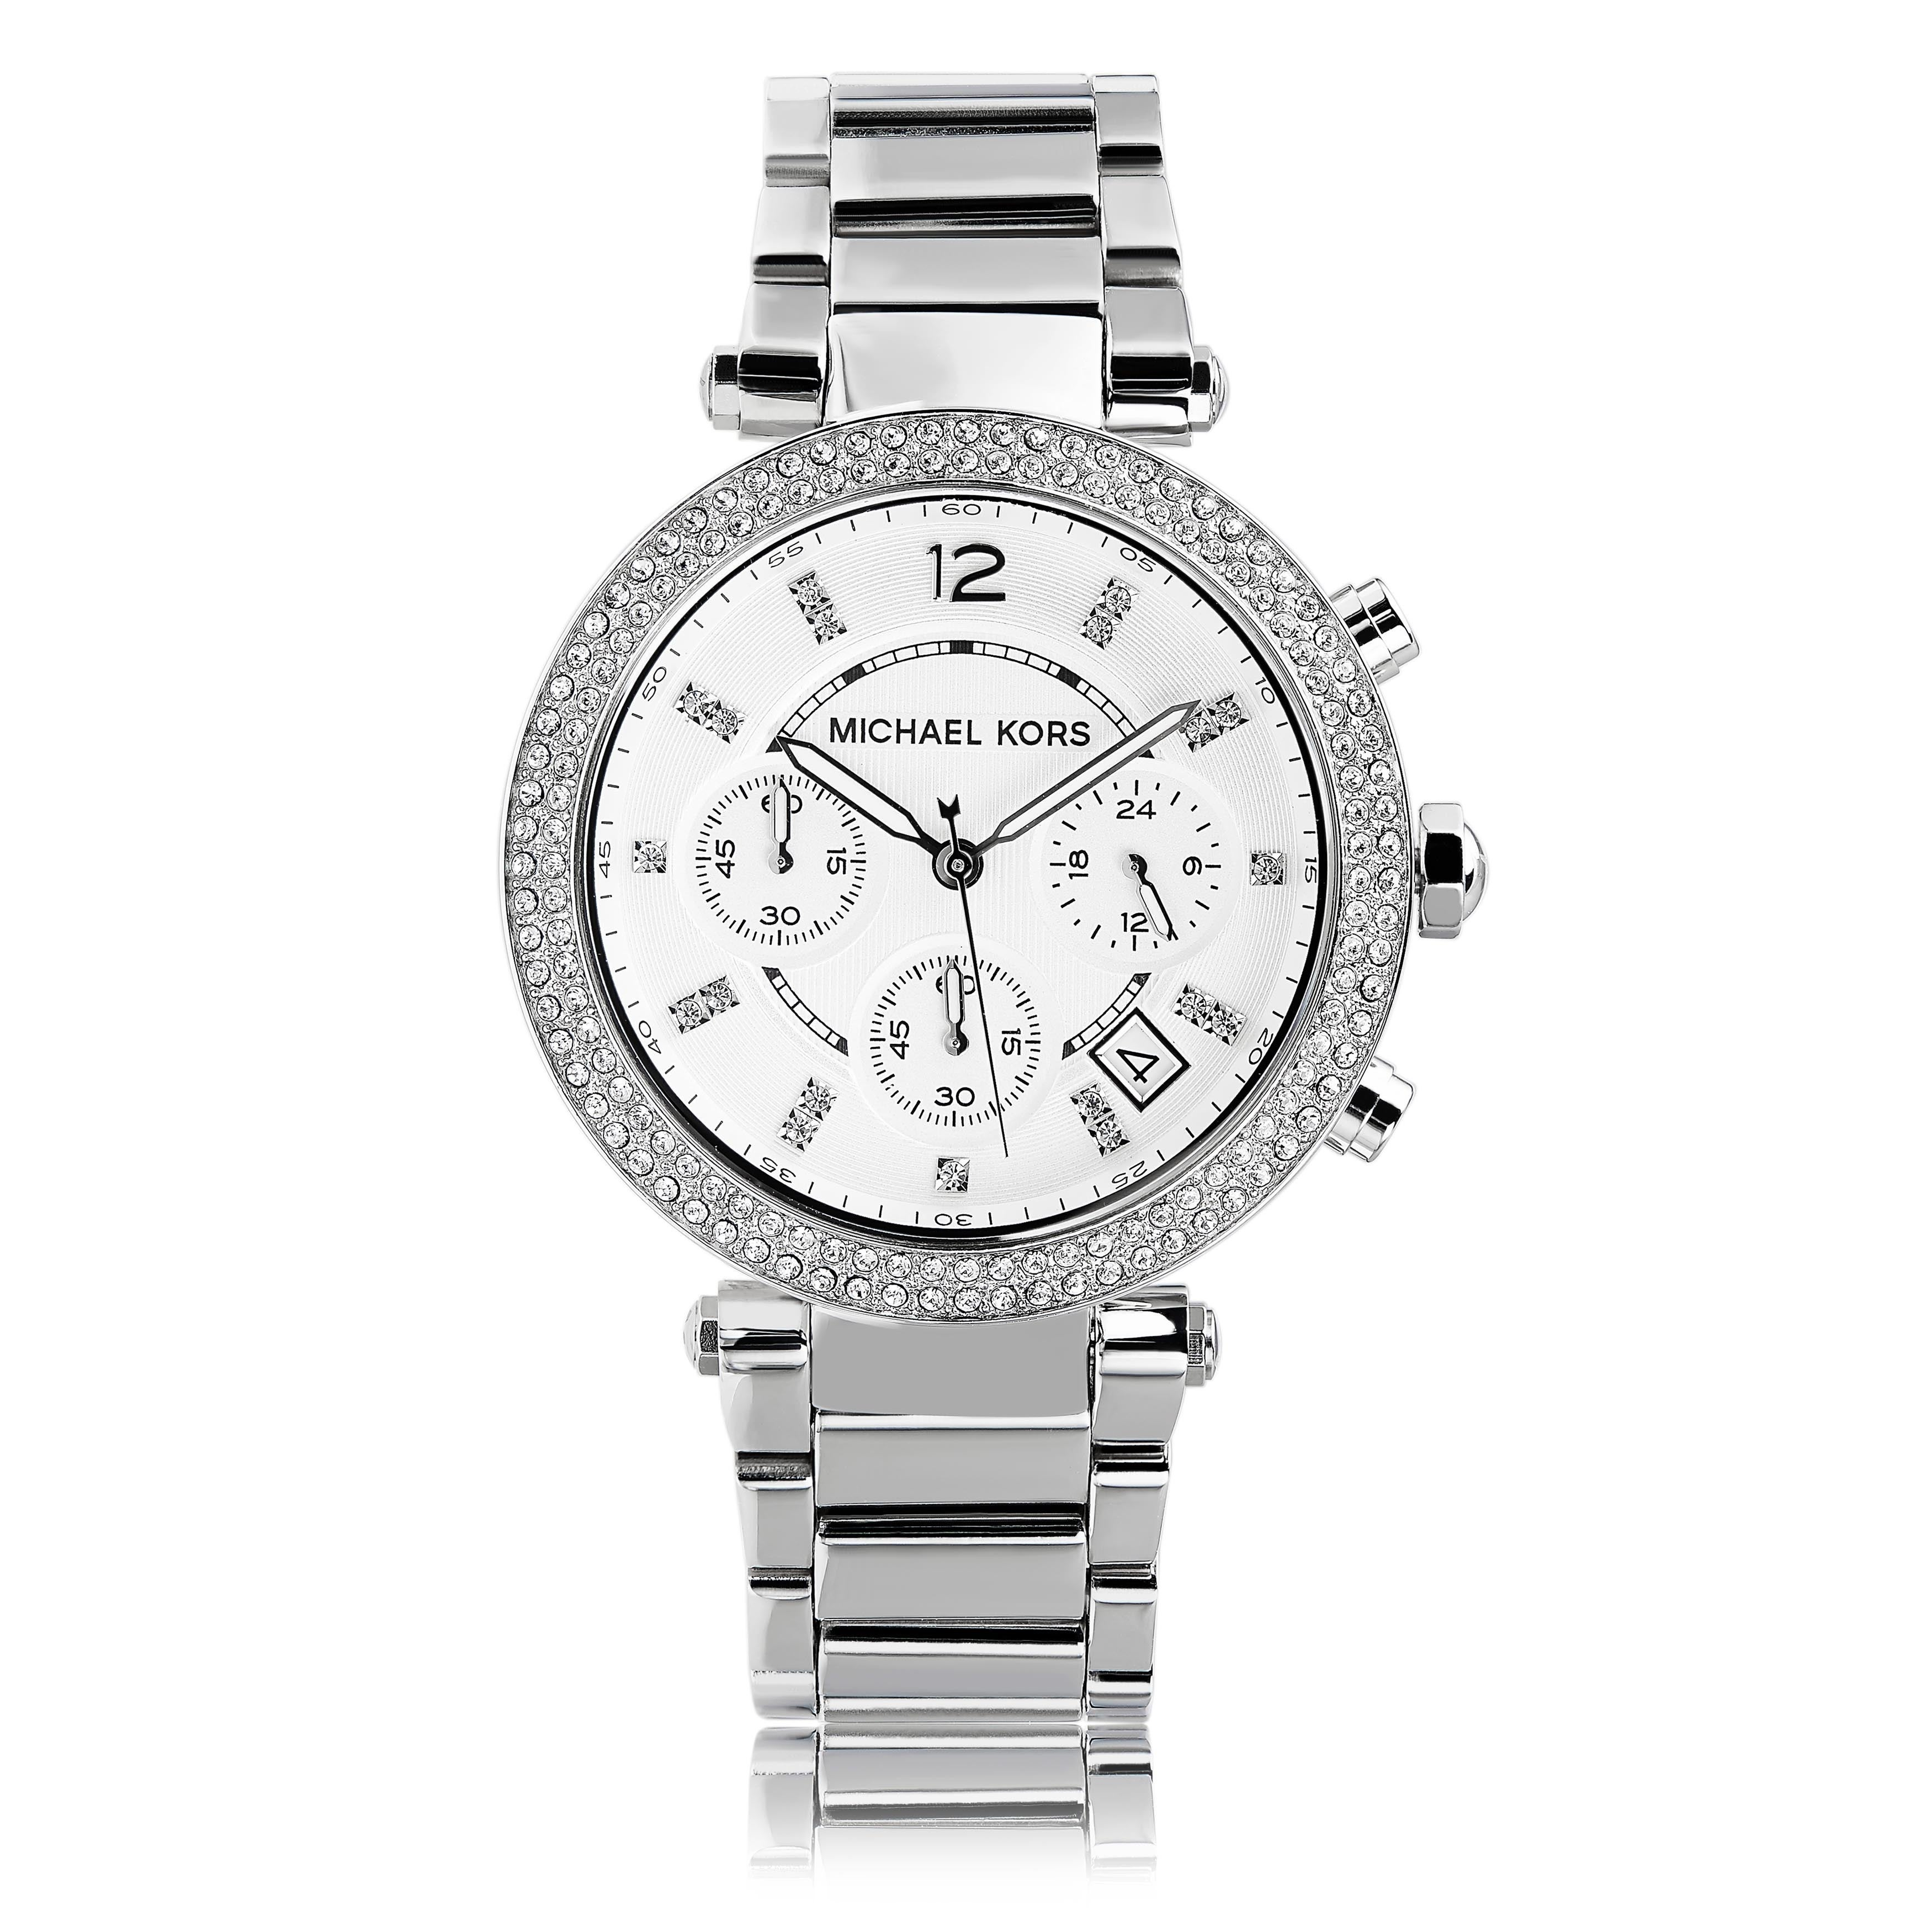 876b0ed03c8f Shop Michael Kors Women s MK5353 Crystal Bezel Stainless Steel Chronograph Watch  - silver - Free Shipping Today - Overstock - 6234281